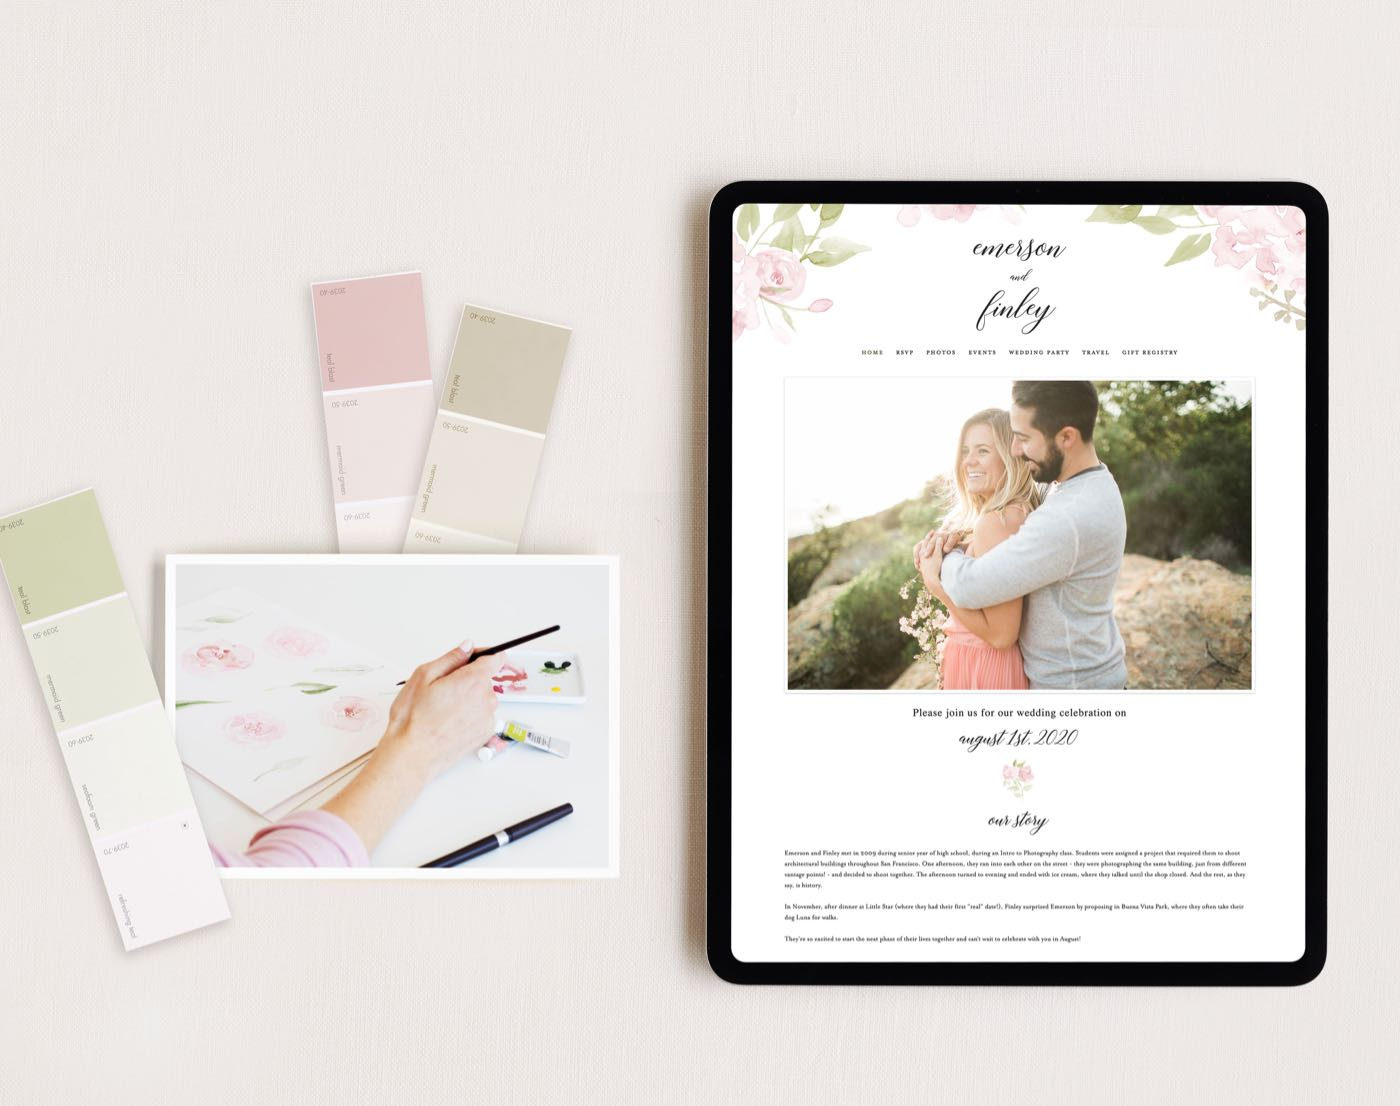 Completely Custom Wedding Websites